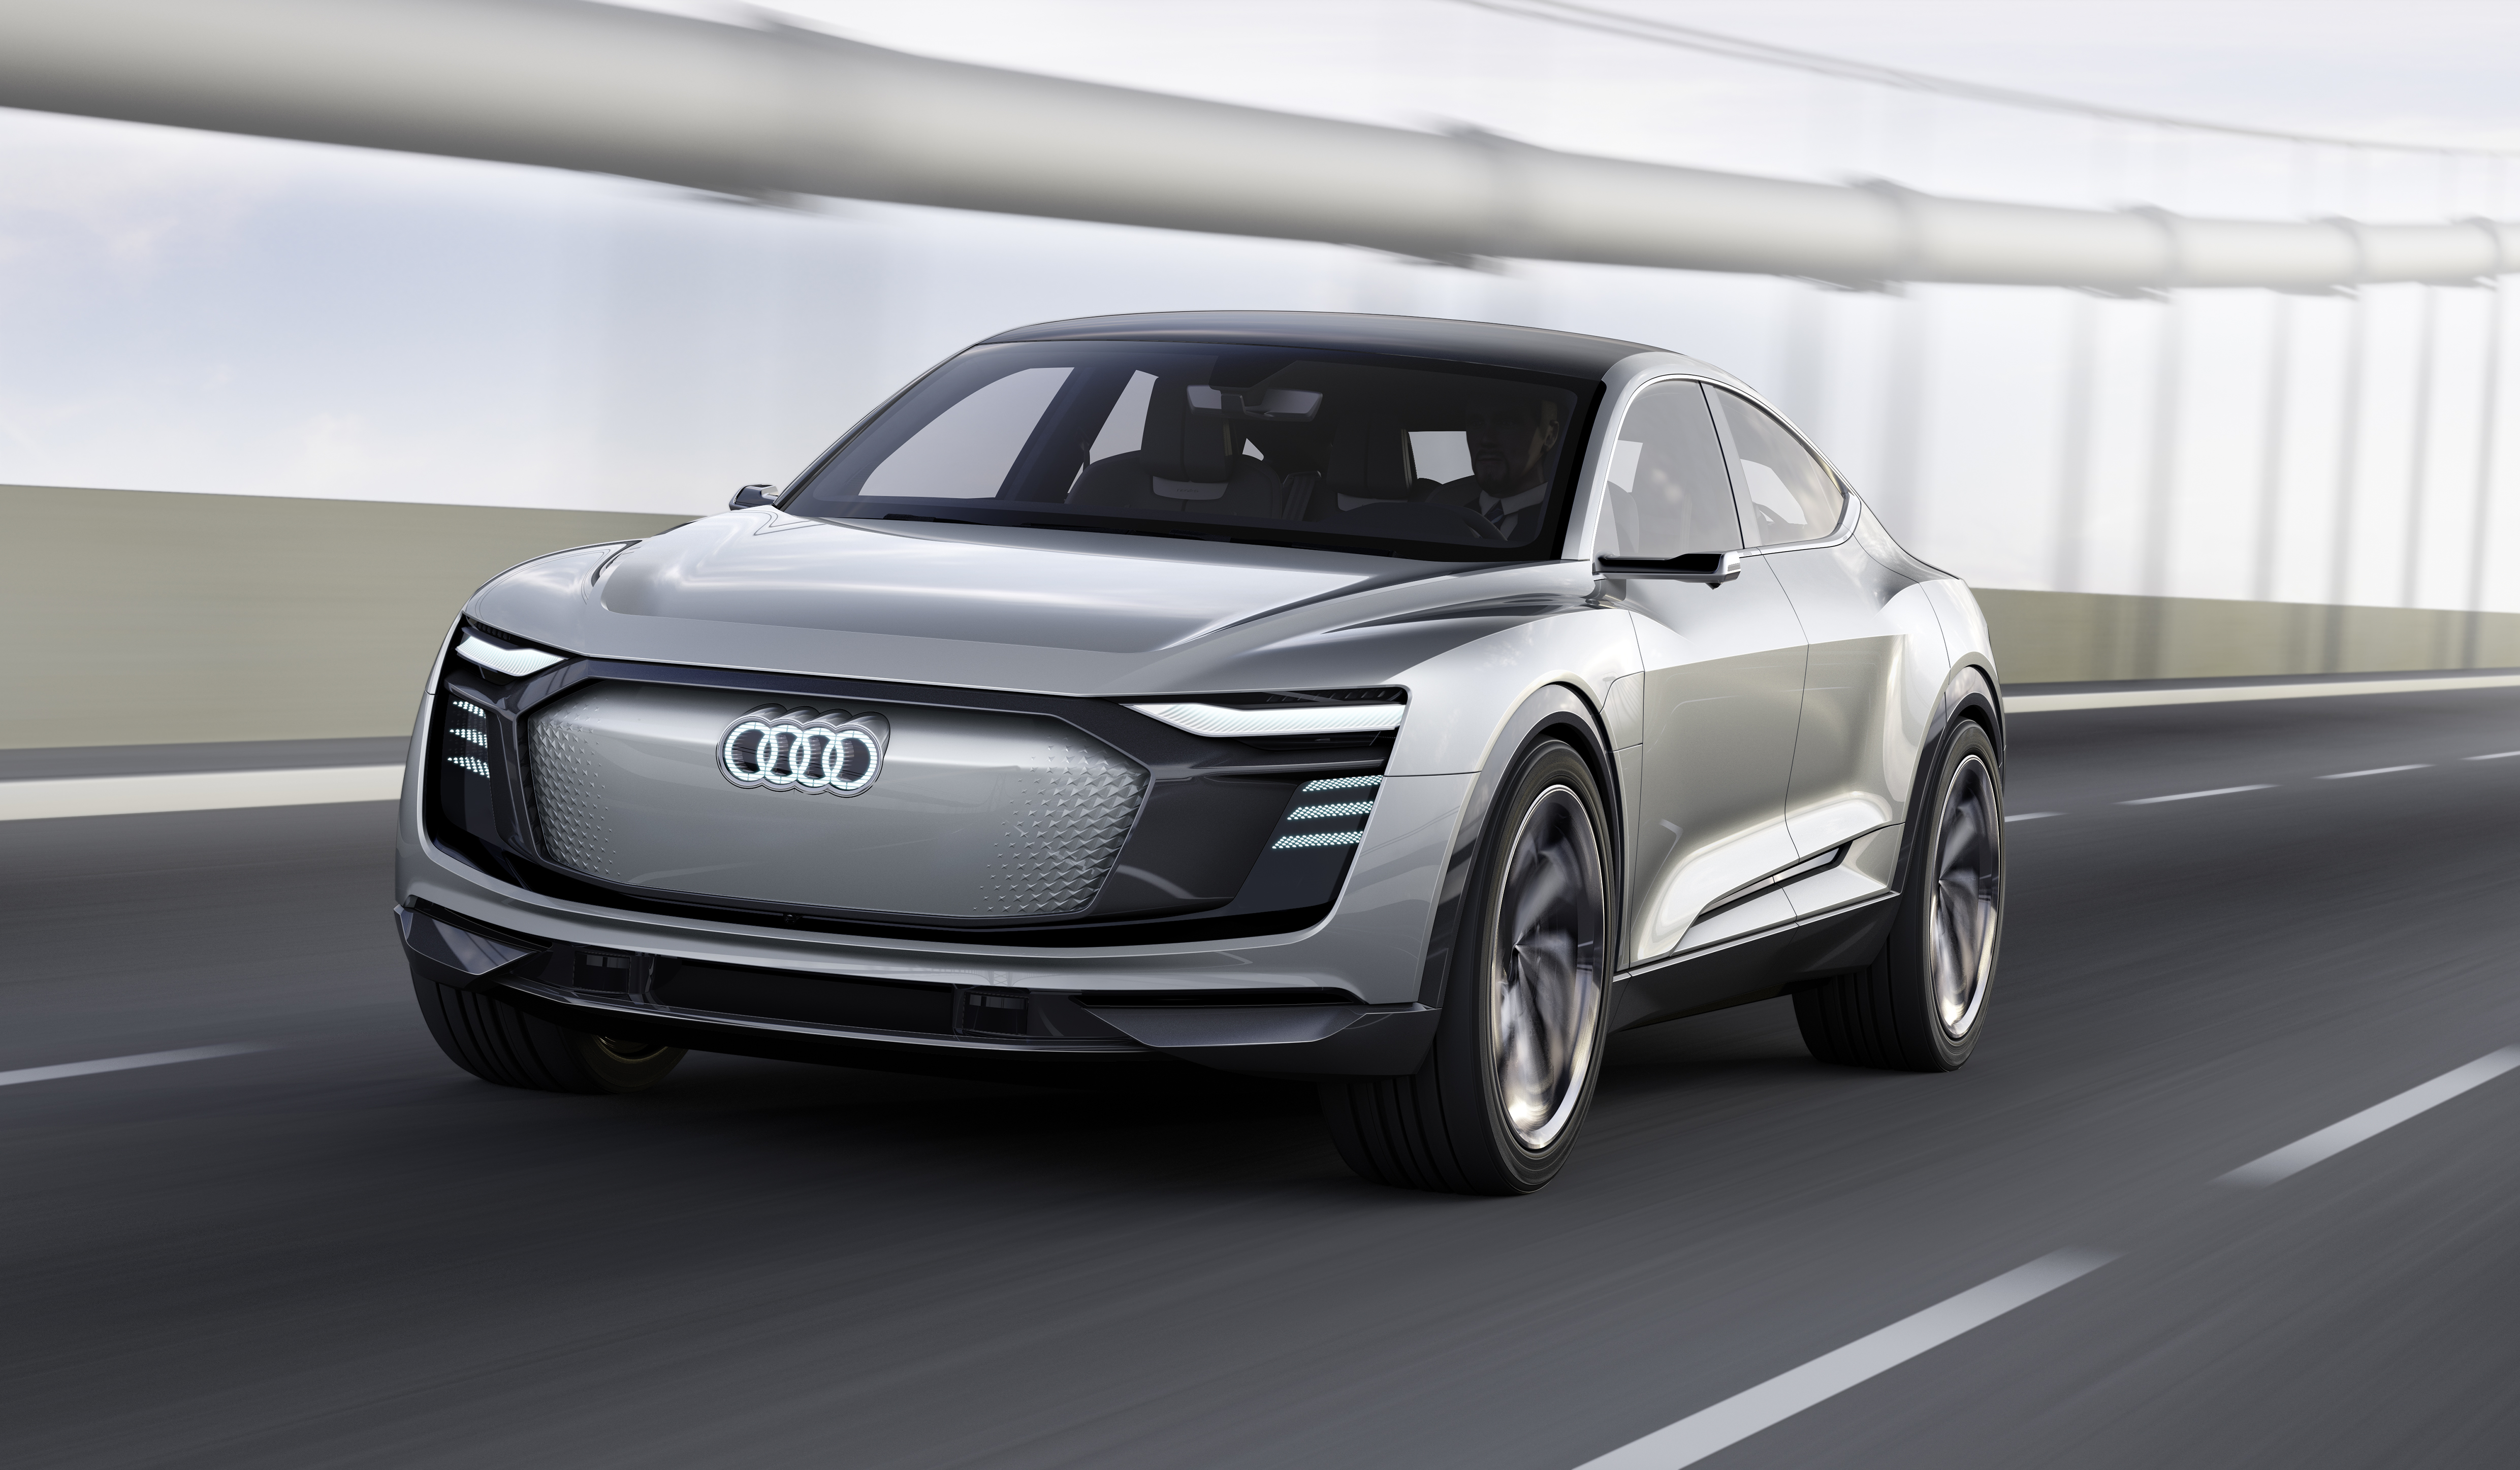 2020 Audi E Tron Sportback Rumors Features Release Date Price Safety More Details